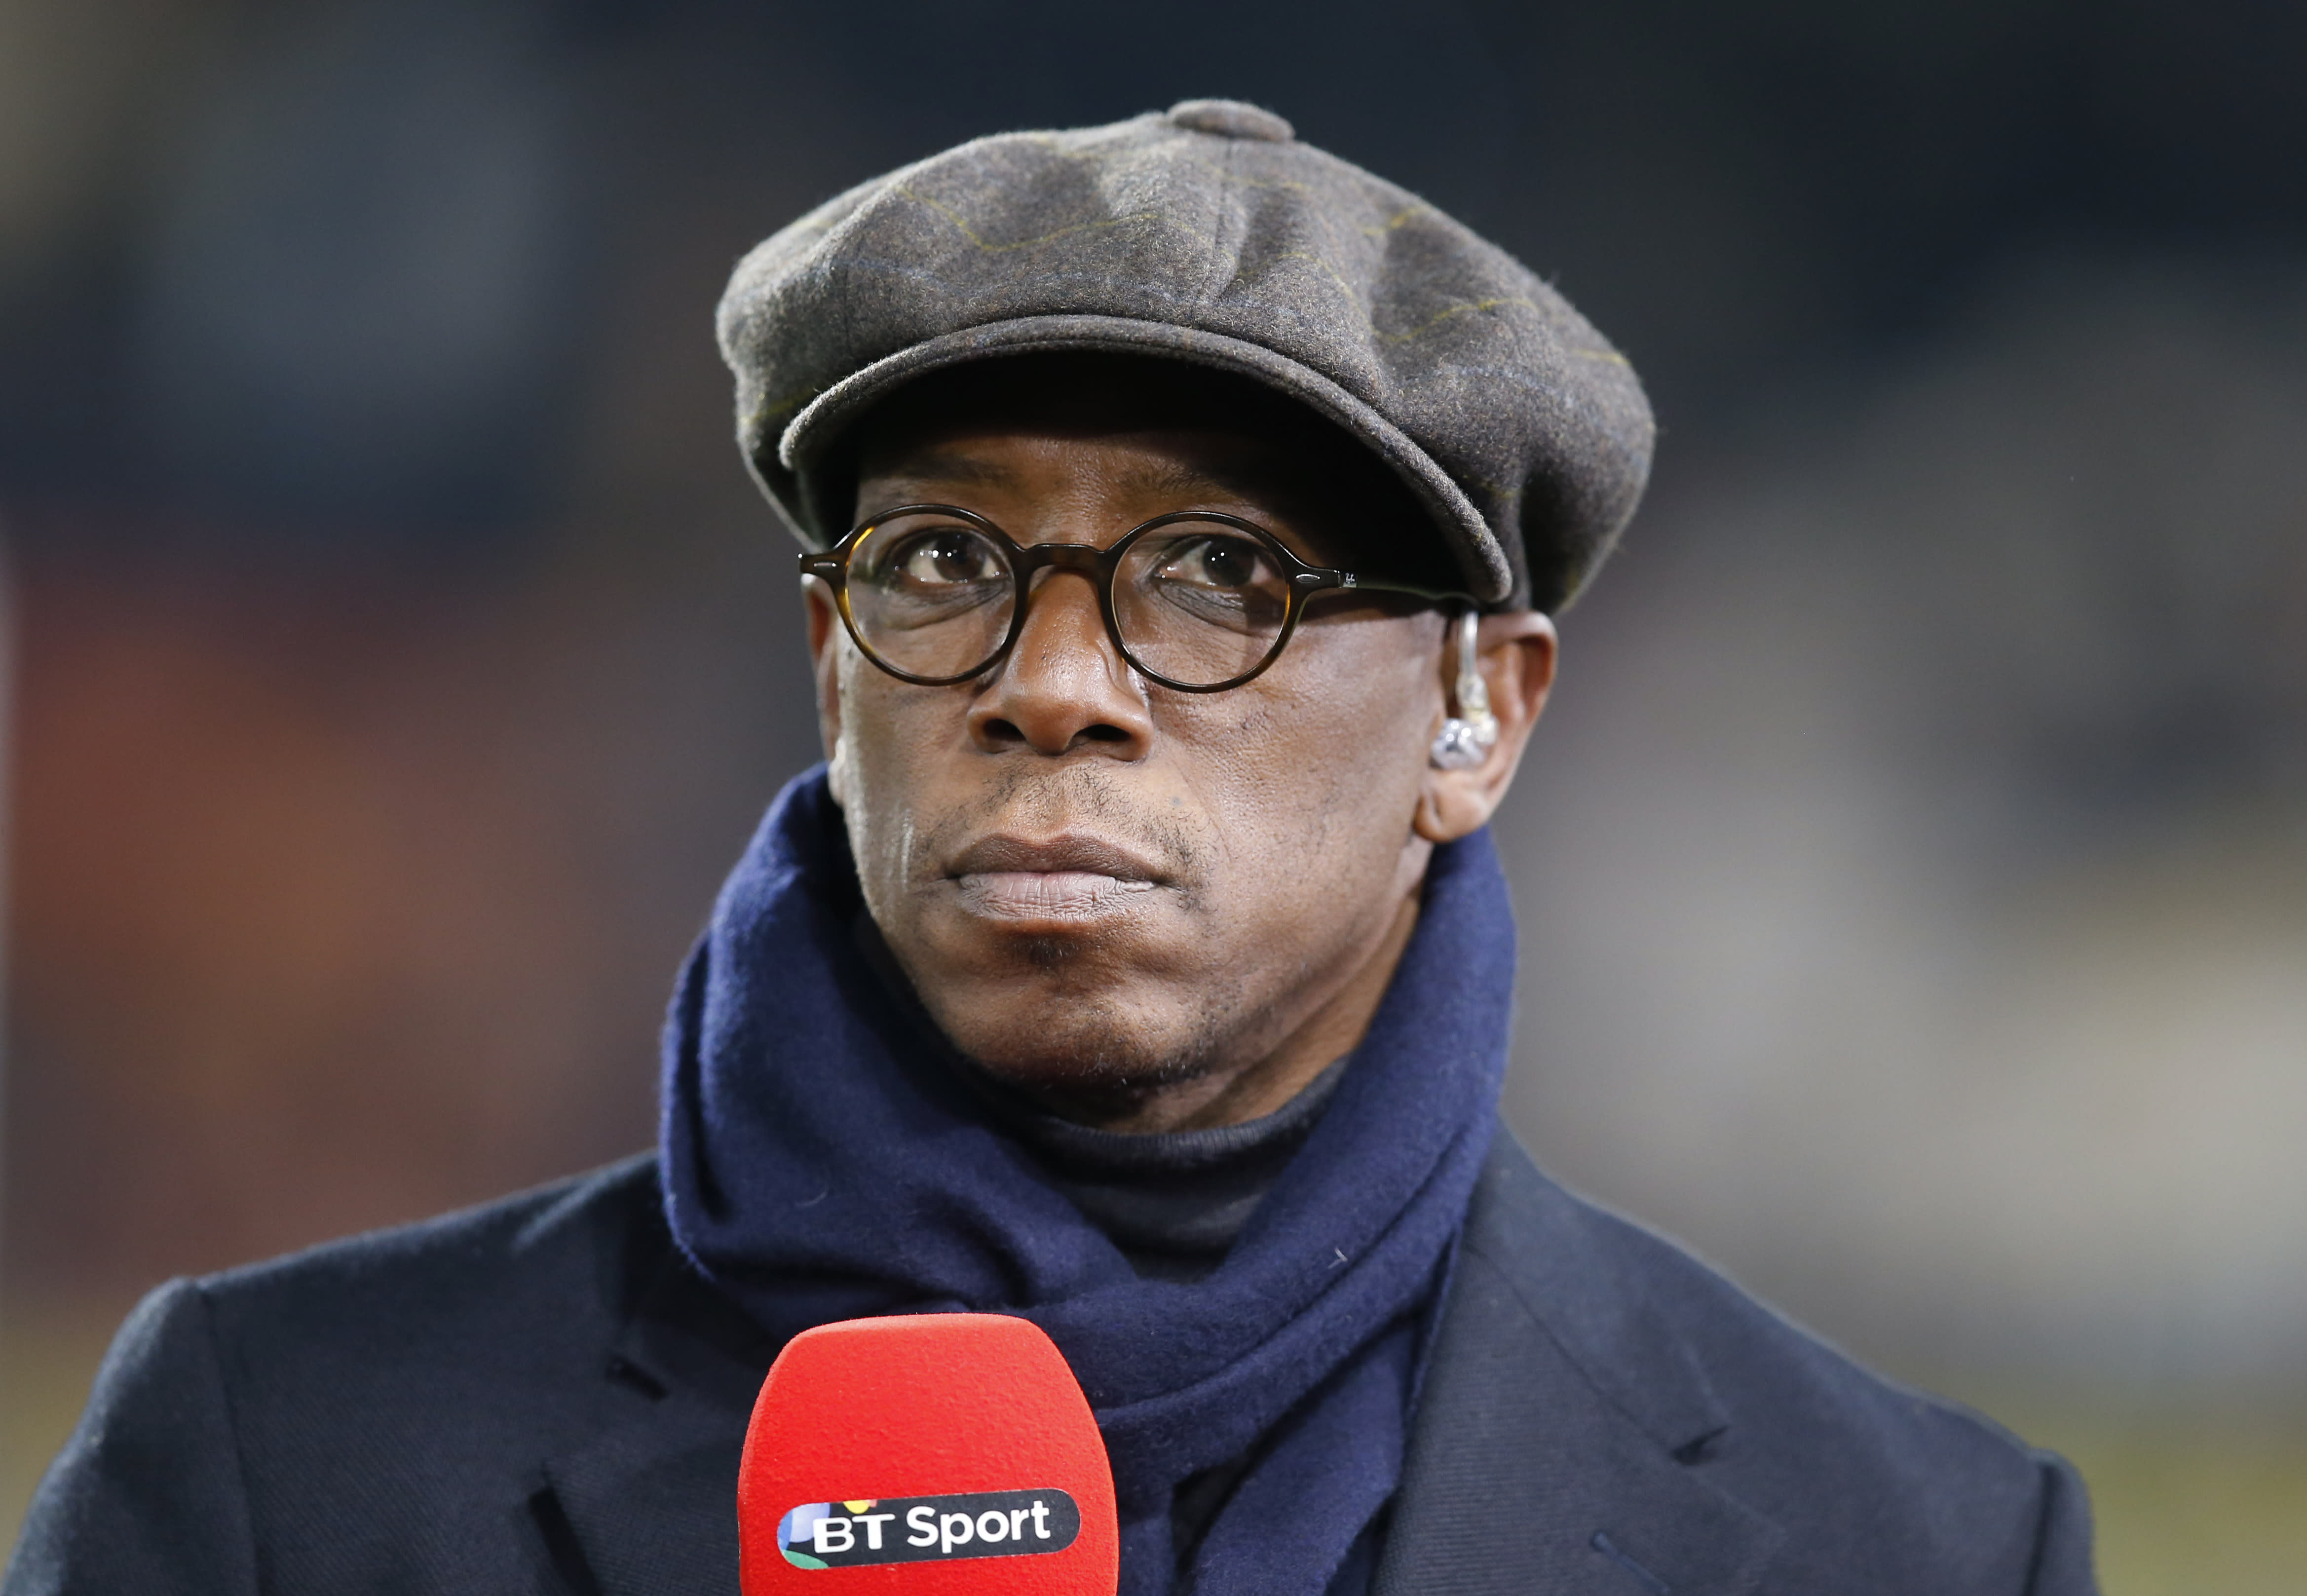 EA bans a FIFA player for life after racist abuse of ex-footballer Ian Wright - Engadget